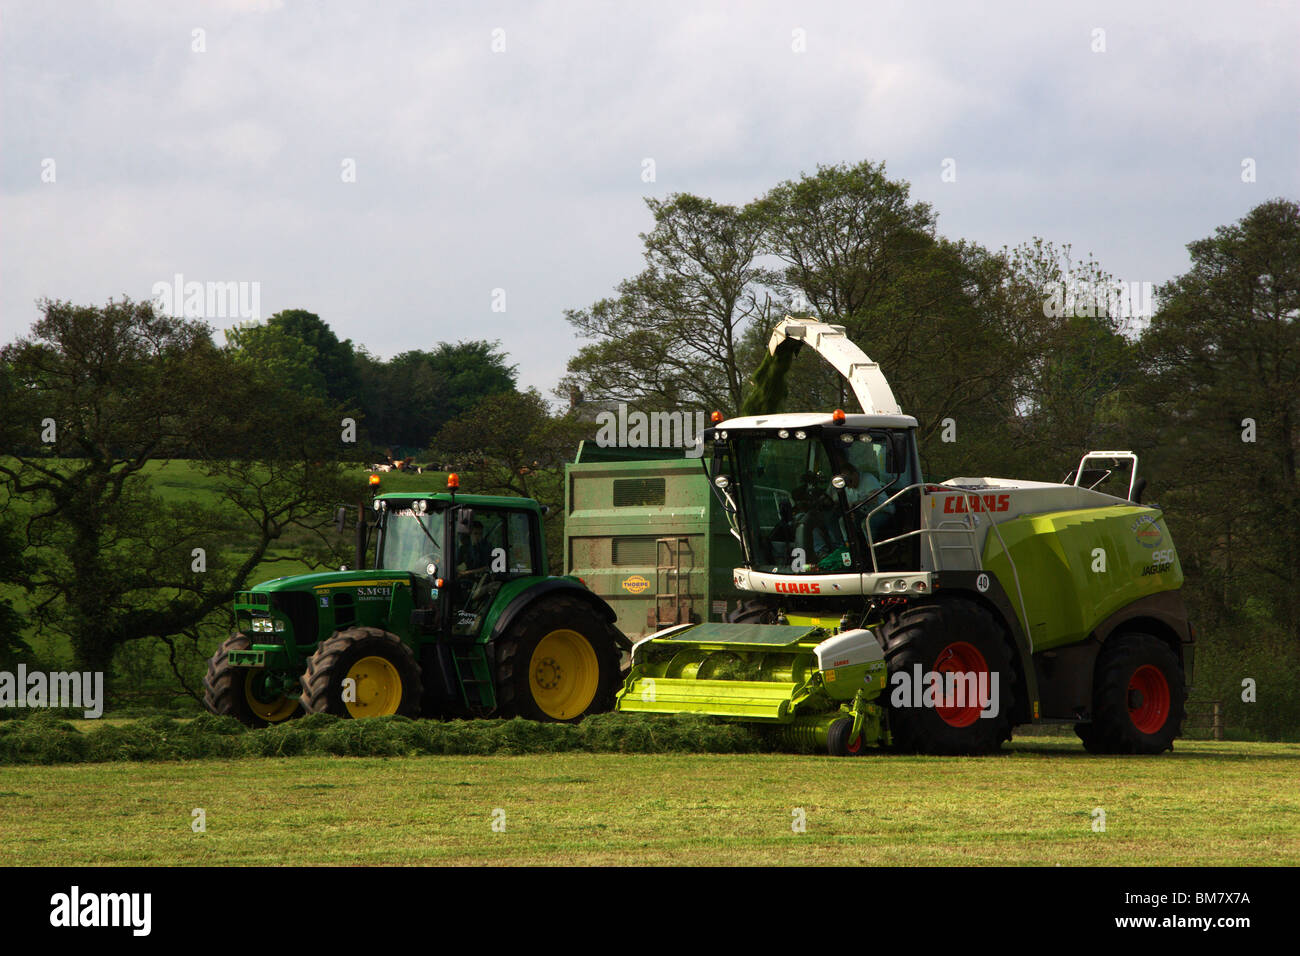 Claas Jaguar 950 with 300 pickup attached and John Deers 7930 Tractor Stock Photo